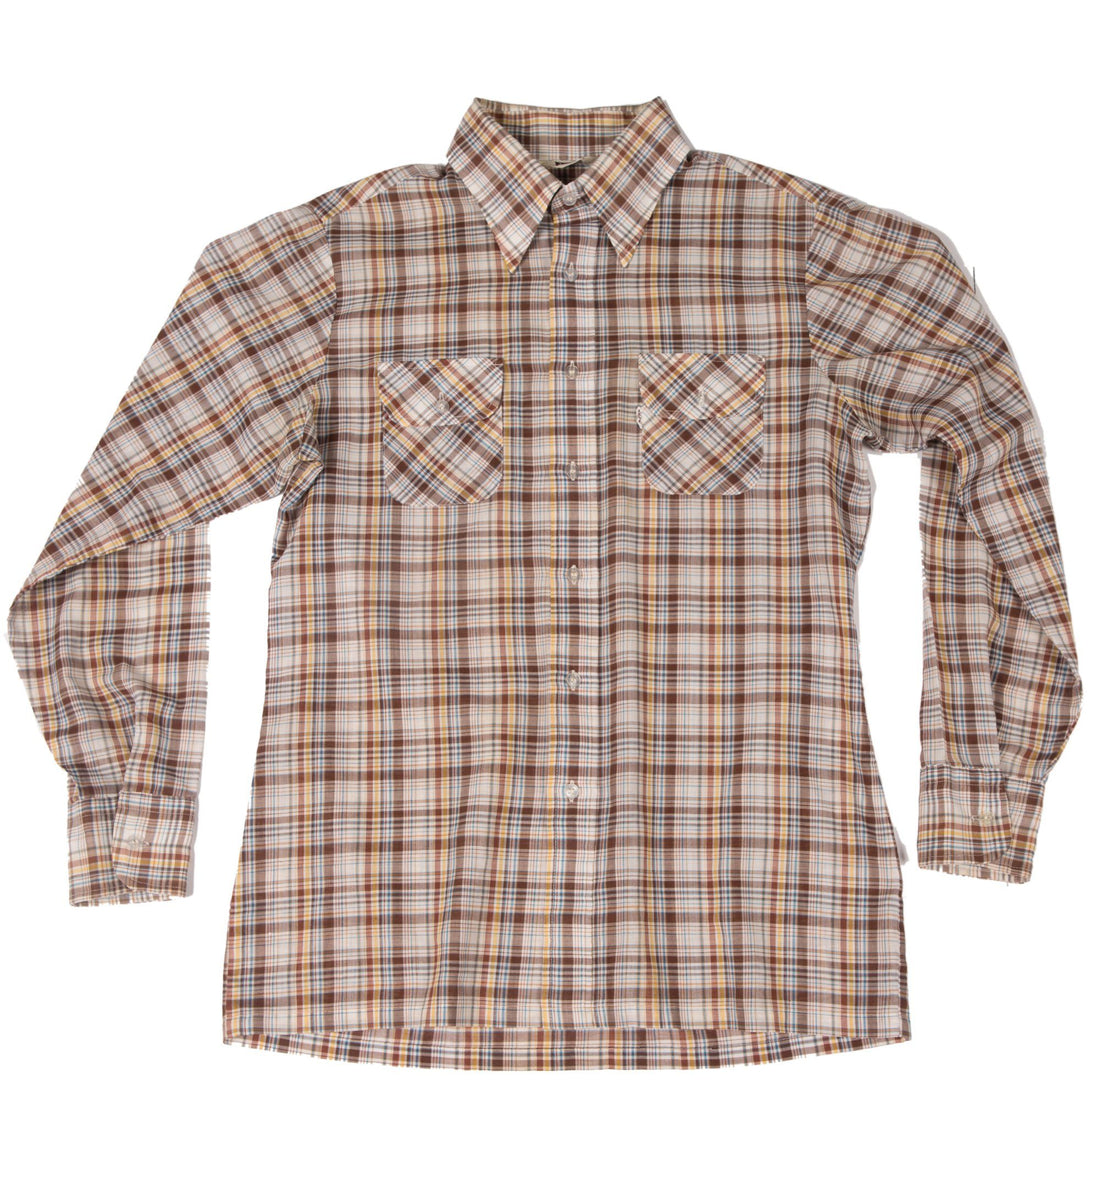 Vintage Levis Brown Plaid Button up Shirt - Vintage - Iron and Resin